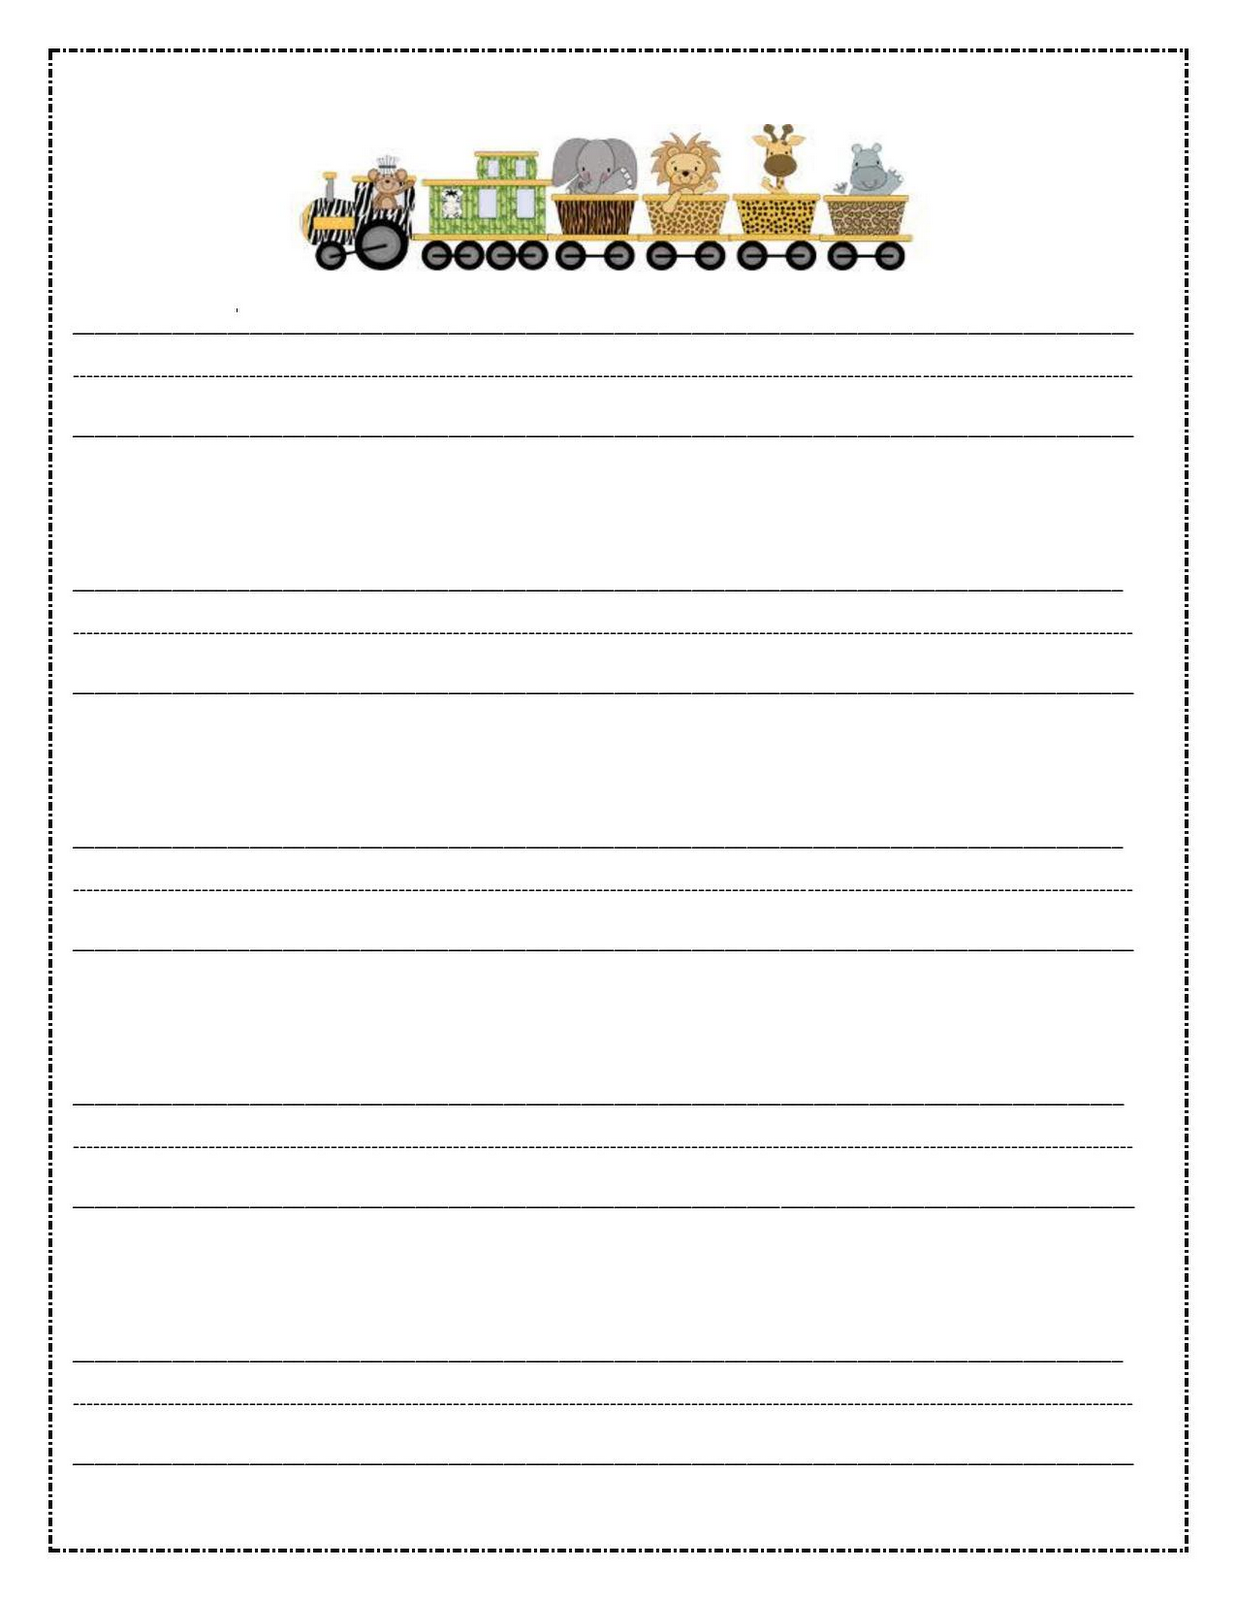 Free Writing Paper Writing Journal Templates Make Your Own Journal  Printable Handwriting Paper Kindergarten Cover Letter Christmas Writing  Paper Nd Grade ...  Free Handwriting Paper Template